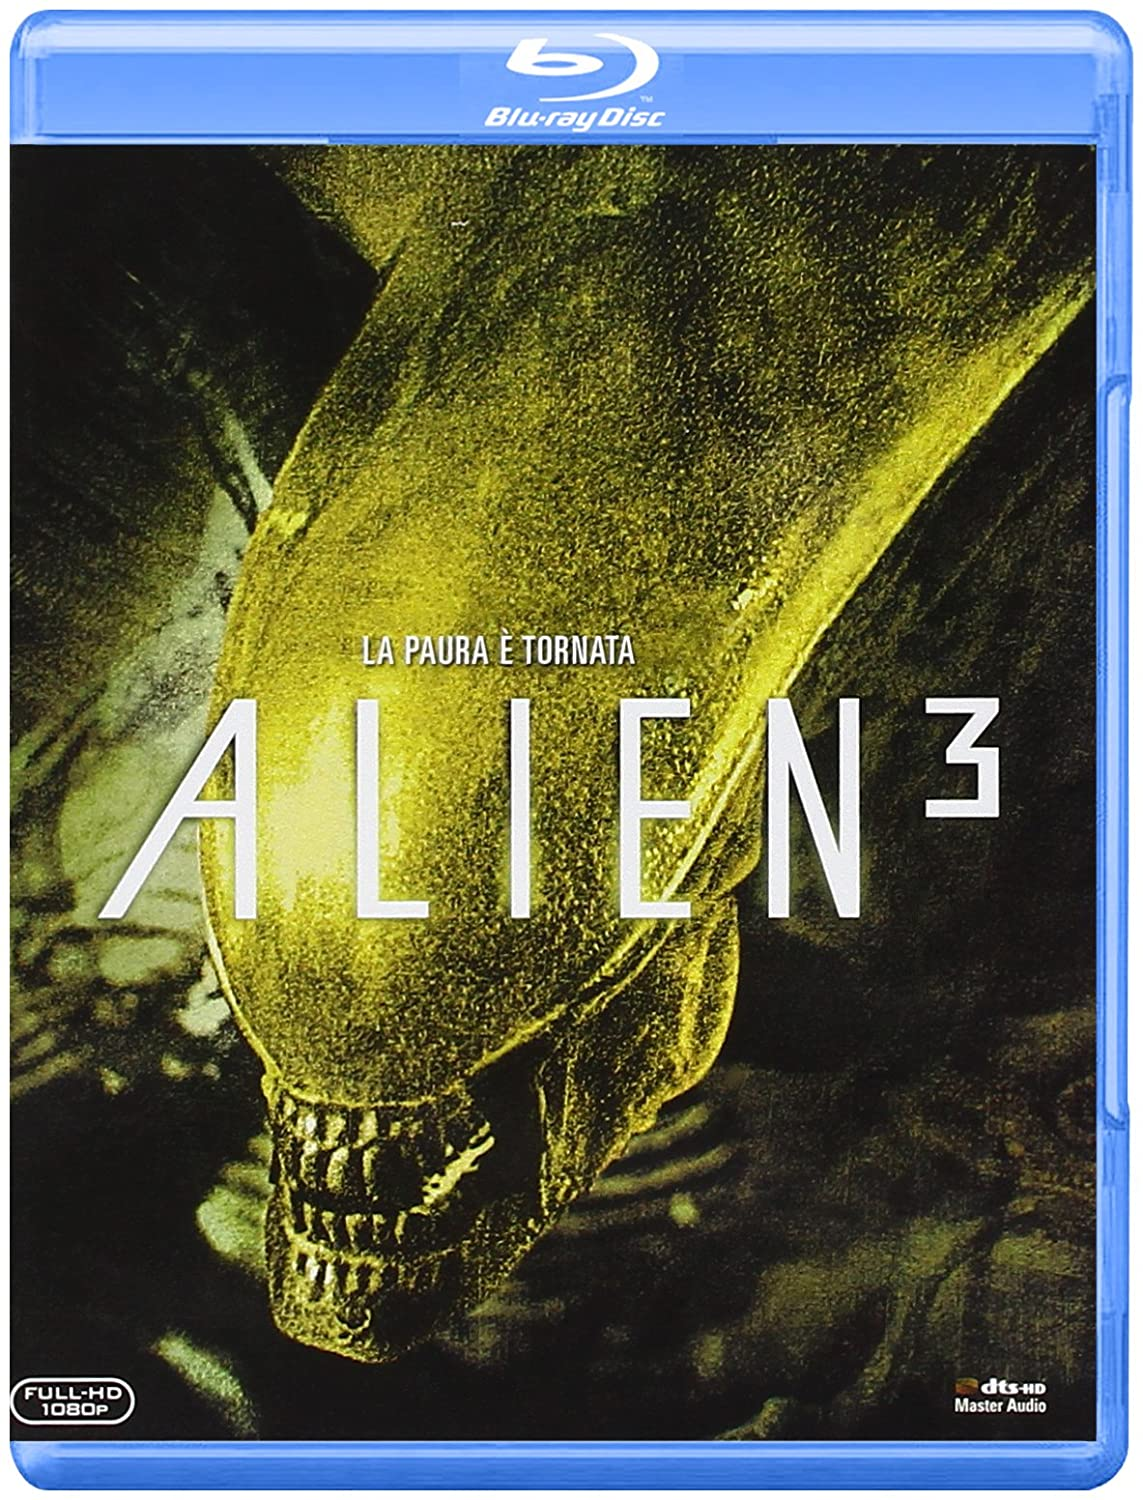 Alien 3 [Italia] [Blu-ray]: Amazon.es: vari, vari, vari: Cine y Series TV